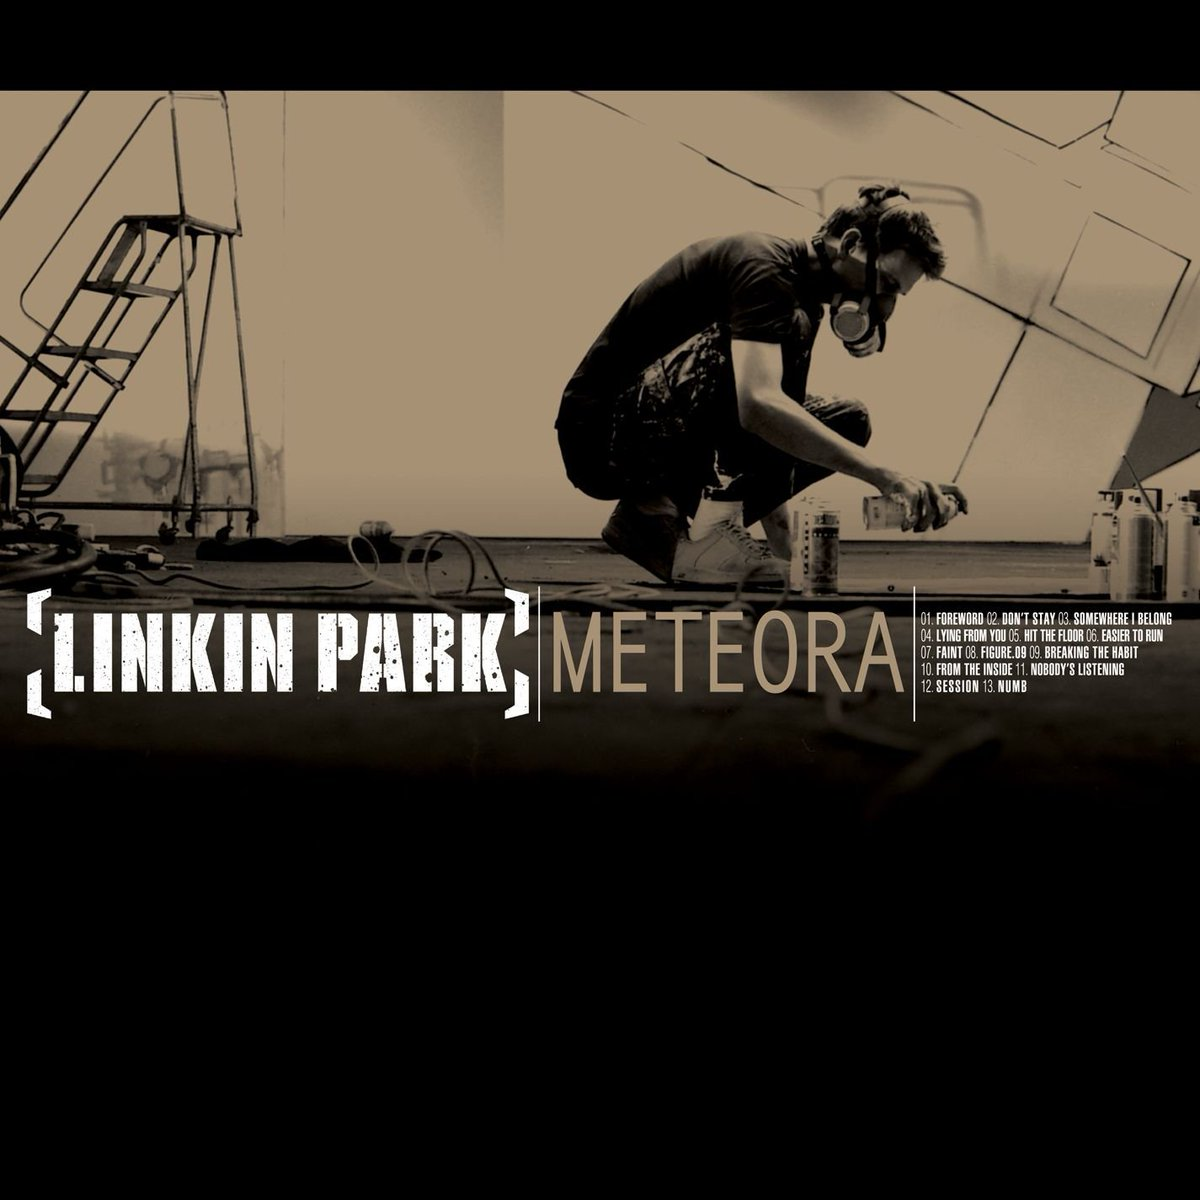 test ツイッターメディア - Top 5 personal favorite albums of all-time bc why not1. American Idiot - Green Day2. Meteora - Linkin Park (you can put Hybrid Theory here too)3. Take Off Your Pants and Jacket - blink-1824. Away From the Sun - 3 Doors Down5. Master of Puppets by Metallica https://t.co/jY7WCUzHxx